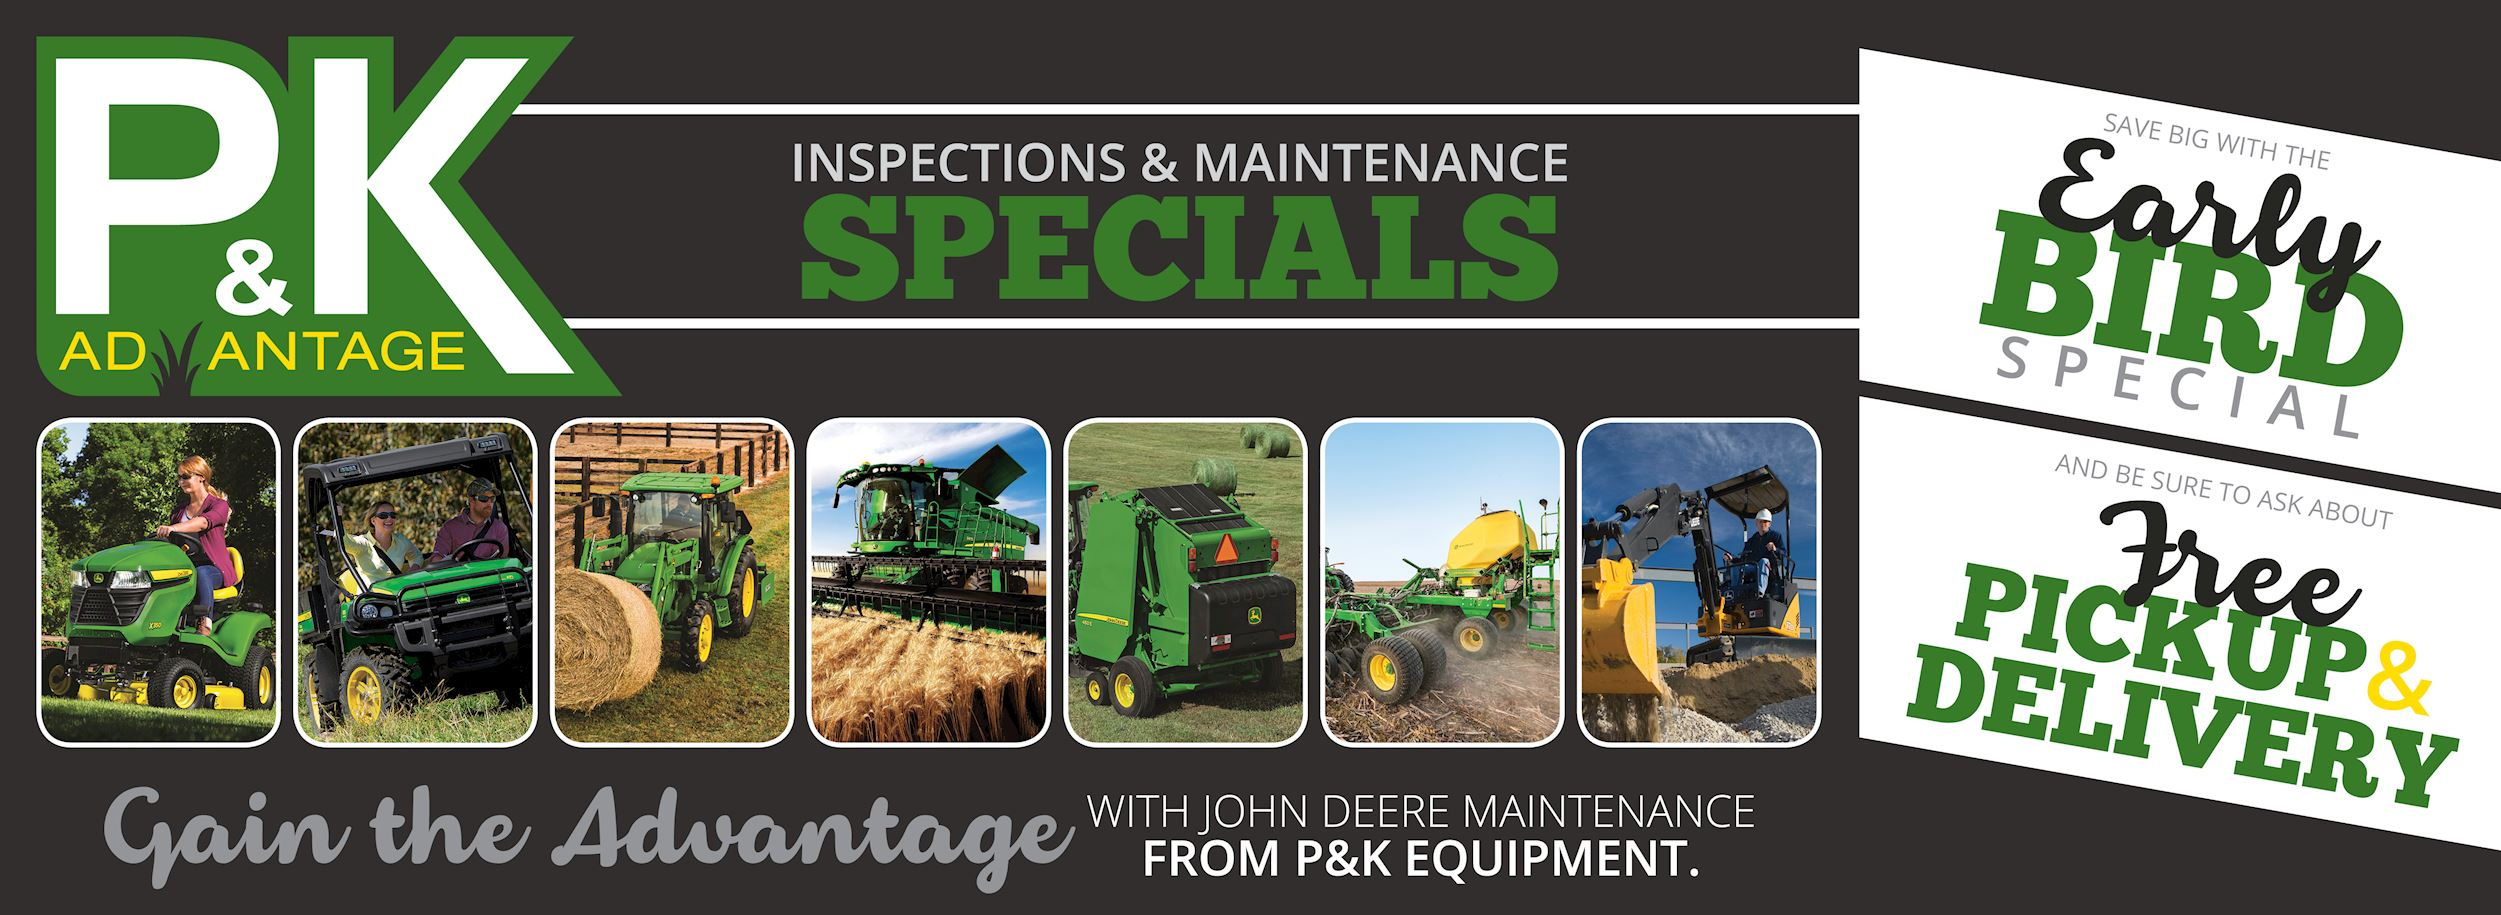 Click here to see the P&K Advantage Inspection & Maintenance Specials- GOING ON NOW!